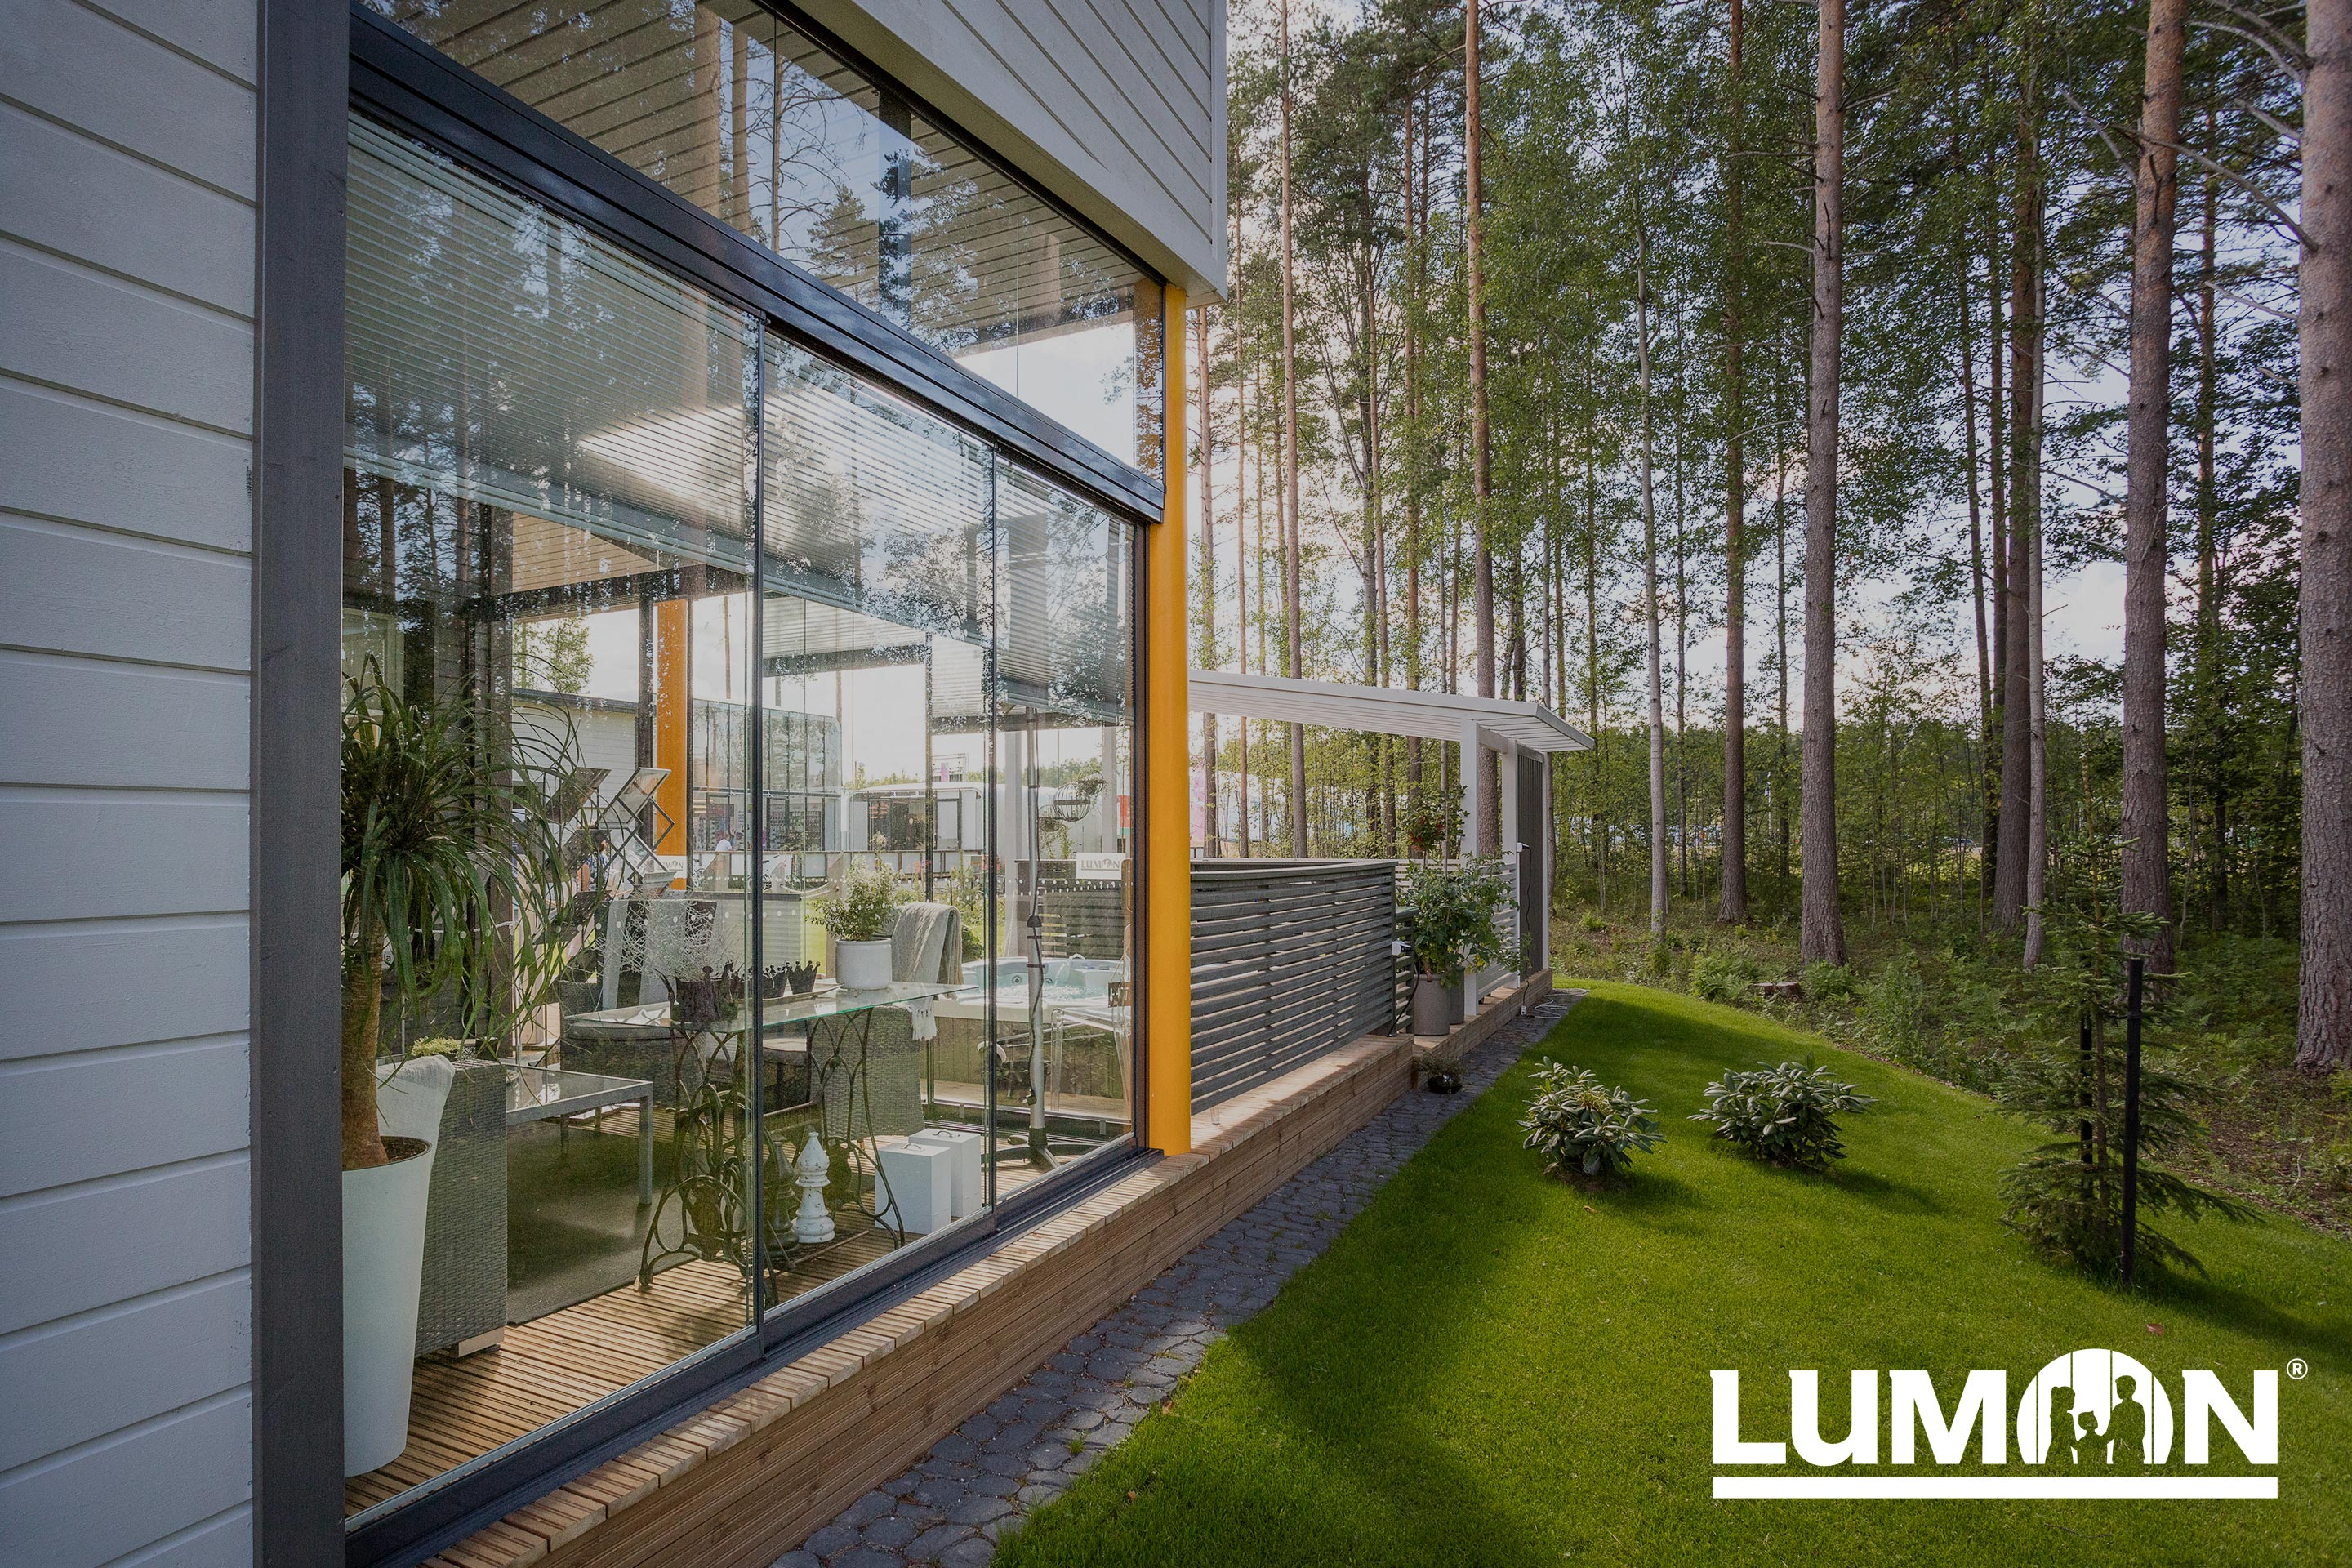 Lumon Canada, Retractable Glass, Sunroom Toronto, Sunroom Hamilton, Sunroom Vancouver, Glass Walls, Glass, Patio Enclosure, Patio Cover